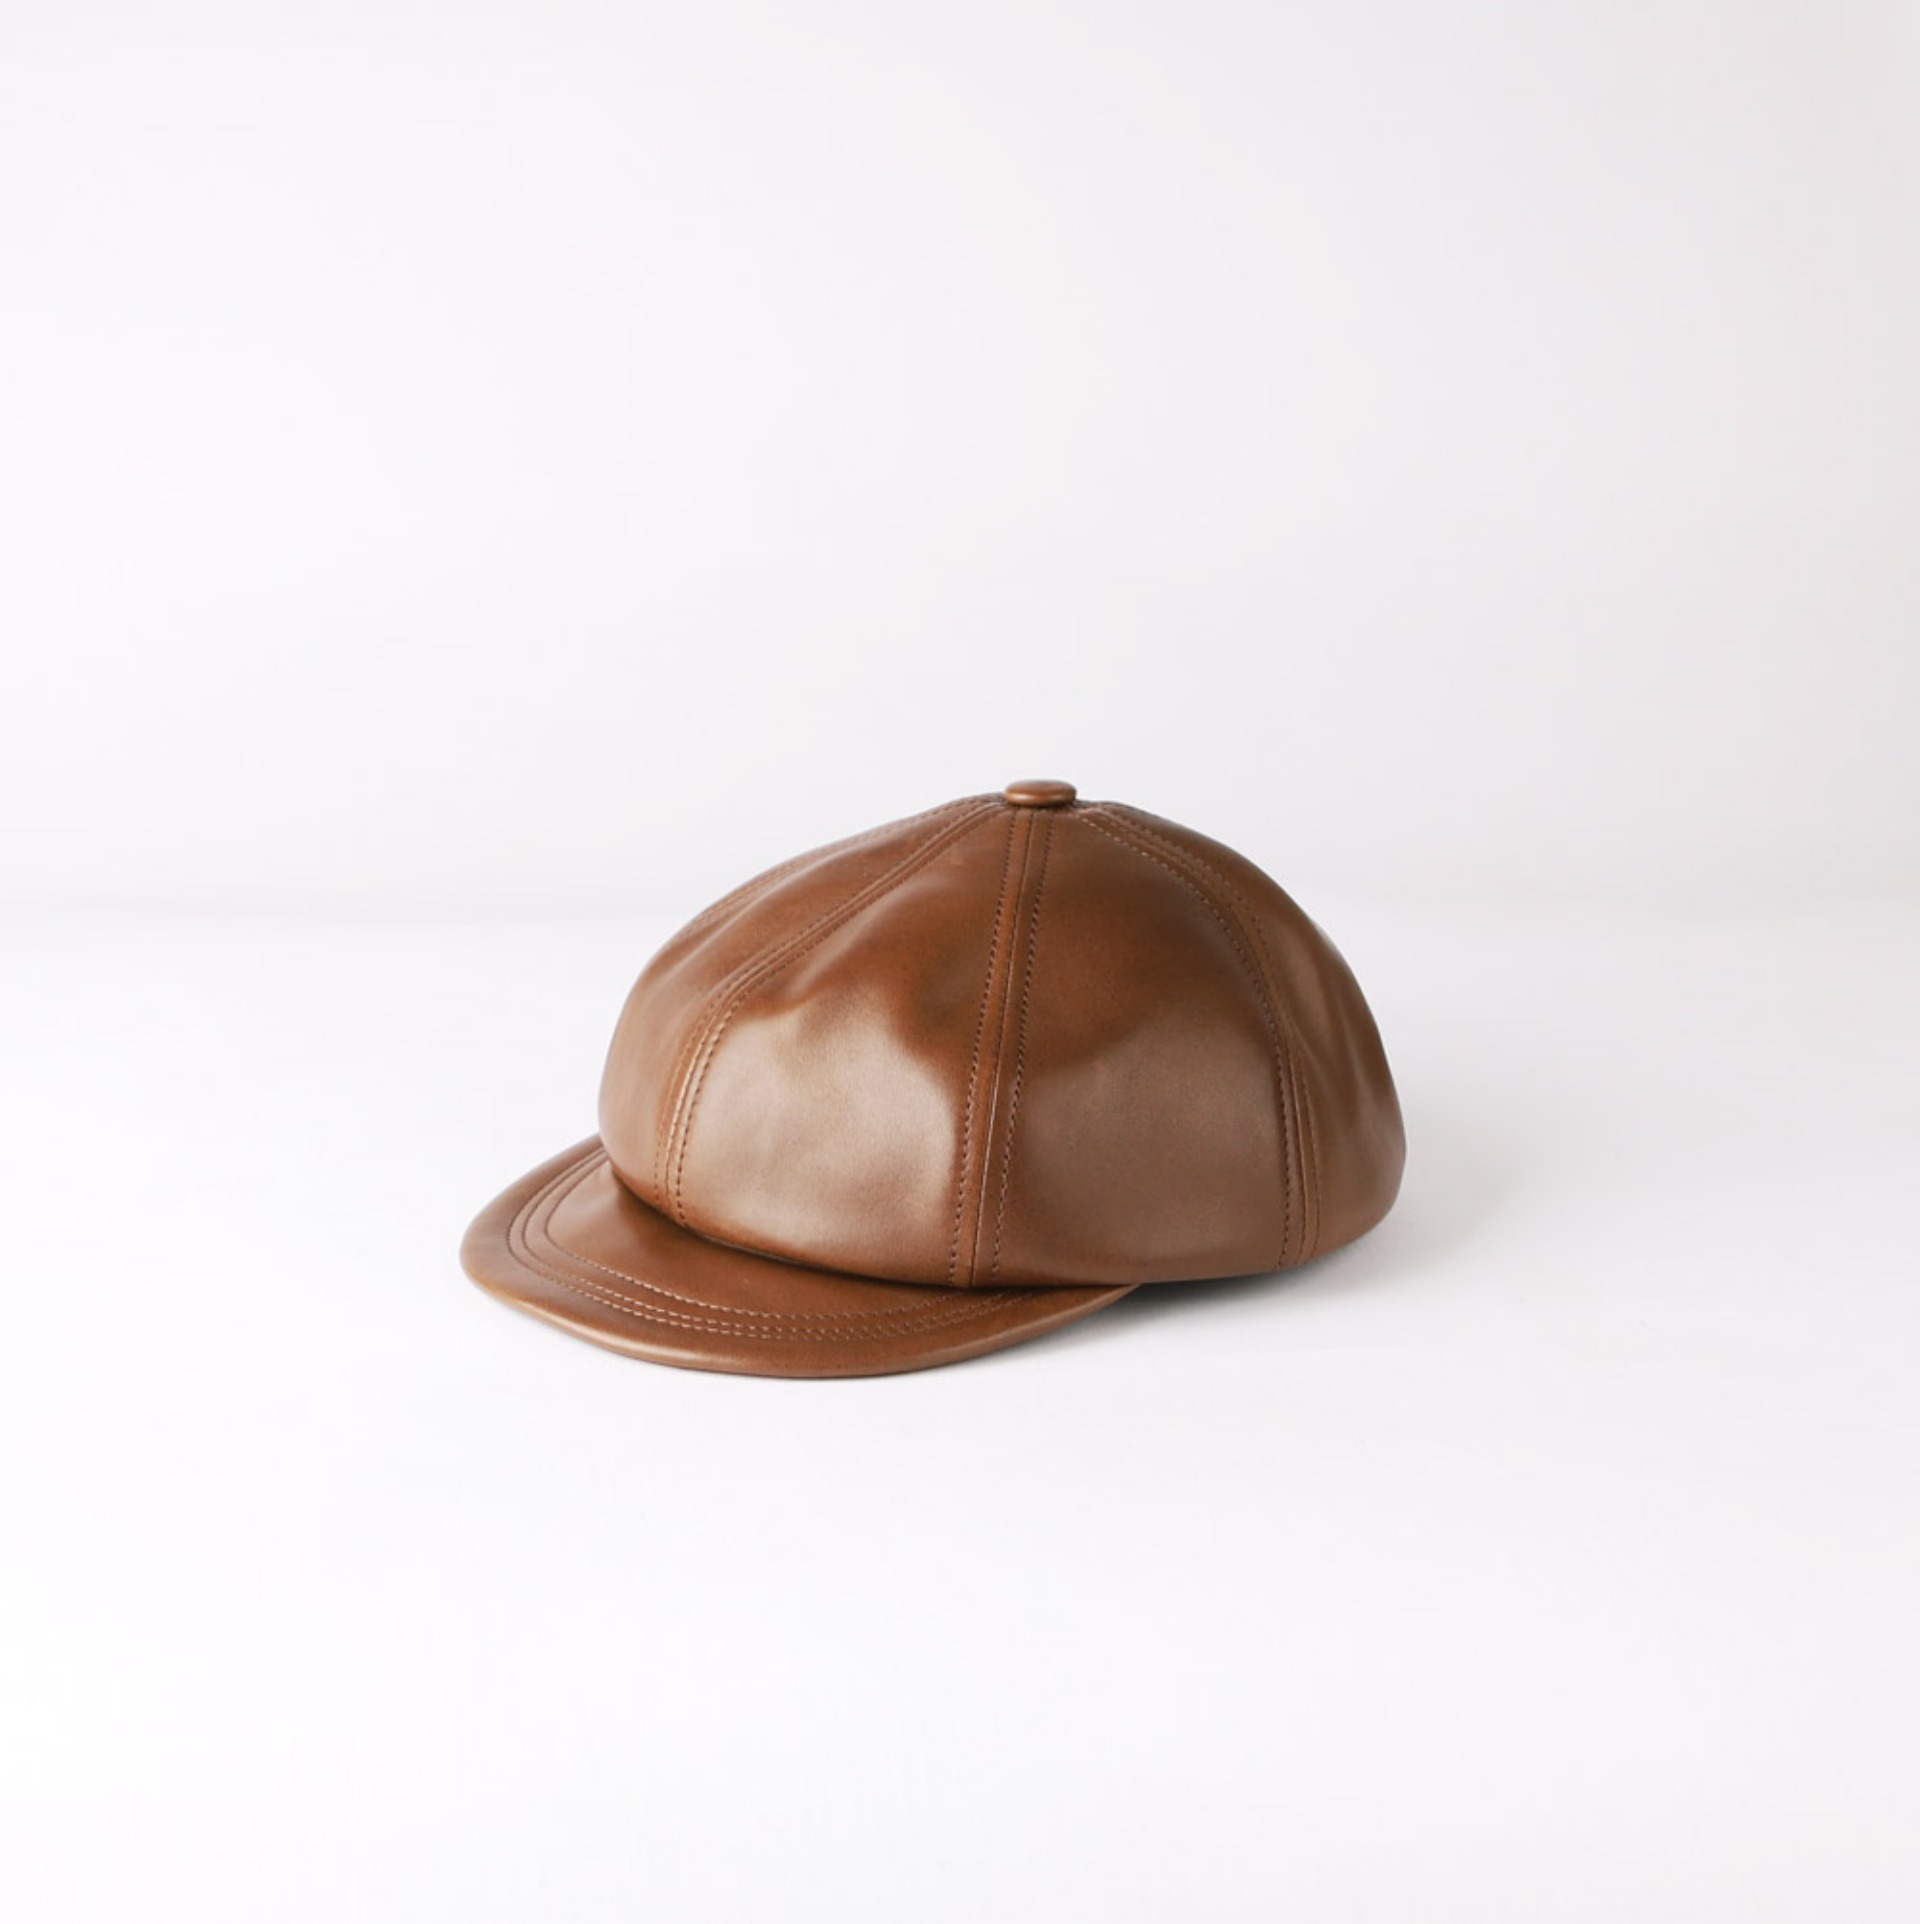 Leather CasquetteLITTLE FEAT CASQUETTE Oiled Horsehide(B-Umber)